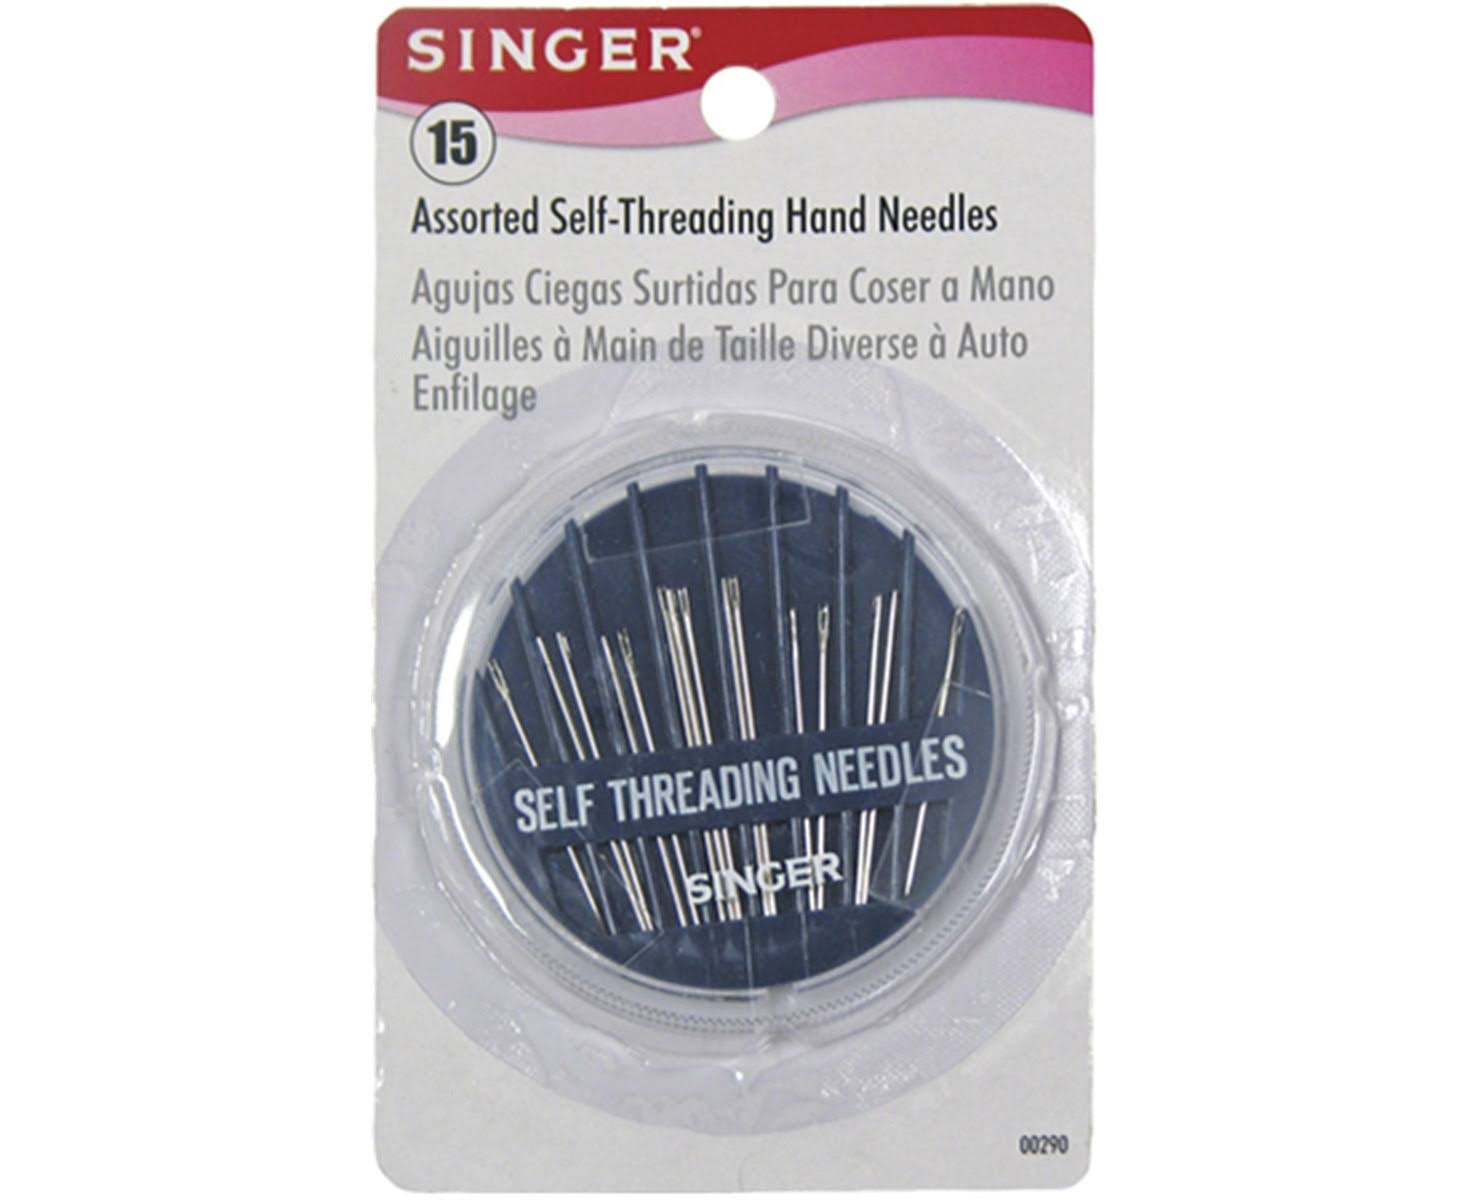 Singer Assorted Self Threading Hand Needles - 15ct